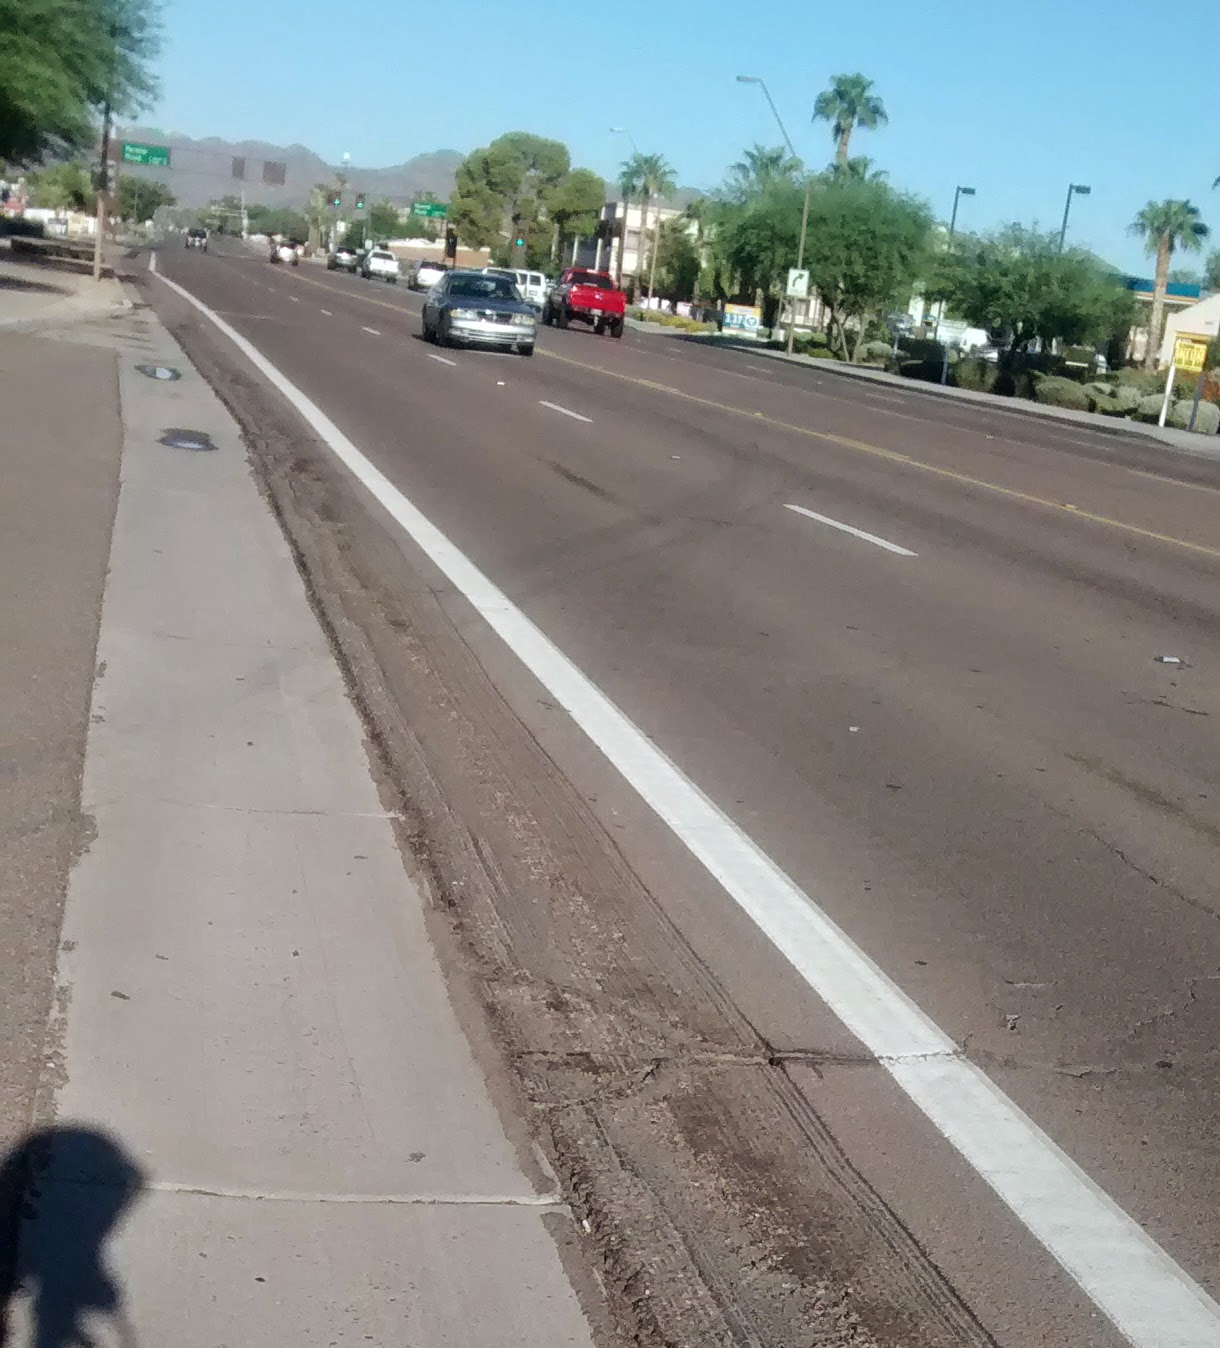 """Photo: Warner Rd, eastbound; about 200' east of intersection with Kyrene. City of Tempe tried to fix the high asphalt by grinding (sometime in early August 2014). This remains dangerous, as it is first of all too narrow; and second the asphalt has already crumbled next to the concrete leaving a very irregular surface. Bike lanes are supposed to have a minimum of 4' of CONSISTENT surface width. It's only about 2' wide at the """"pinch point"""" (in the pic it's near the puddle in the gutter).  Note that at the same time, the city (correctly in my view), fixed a similar large height-irregularity in the asphalt closer to the intersection by digging out and resurfacing a strip of asphalt next to the flat concrete gutter. #edgehazard"""